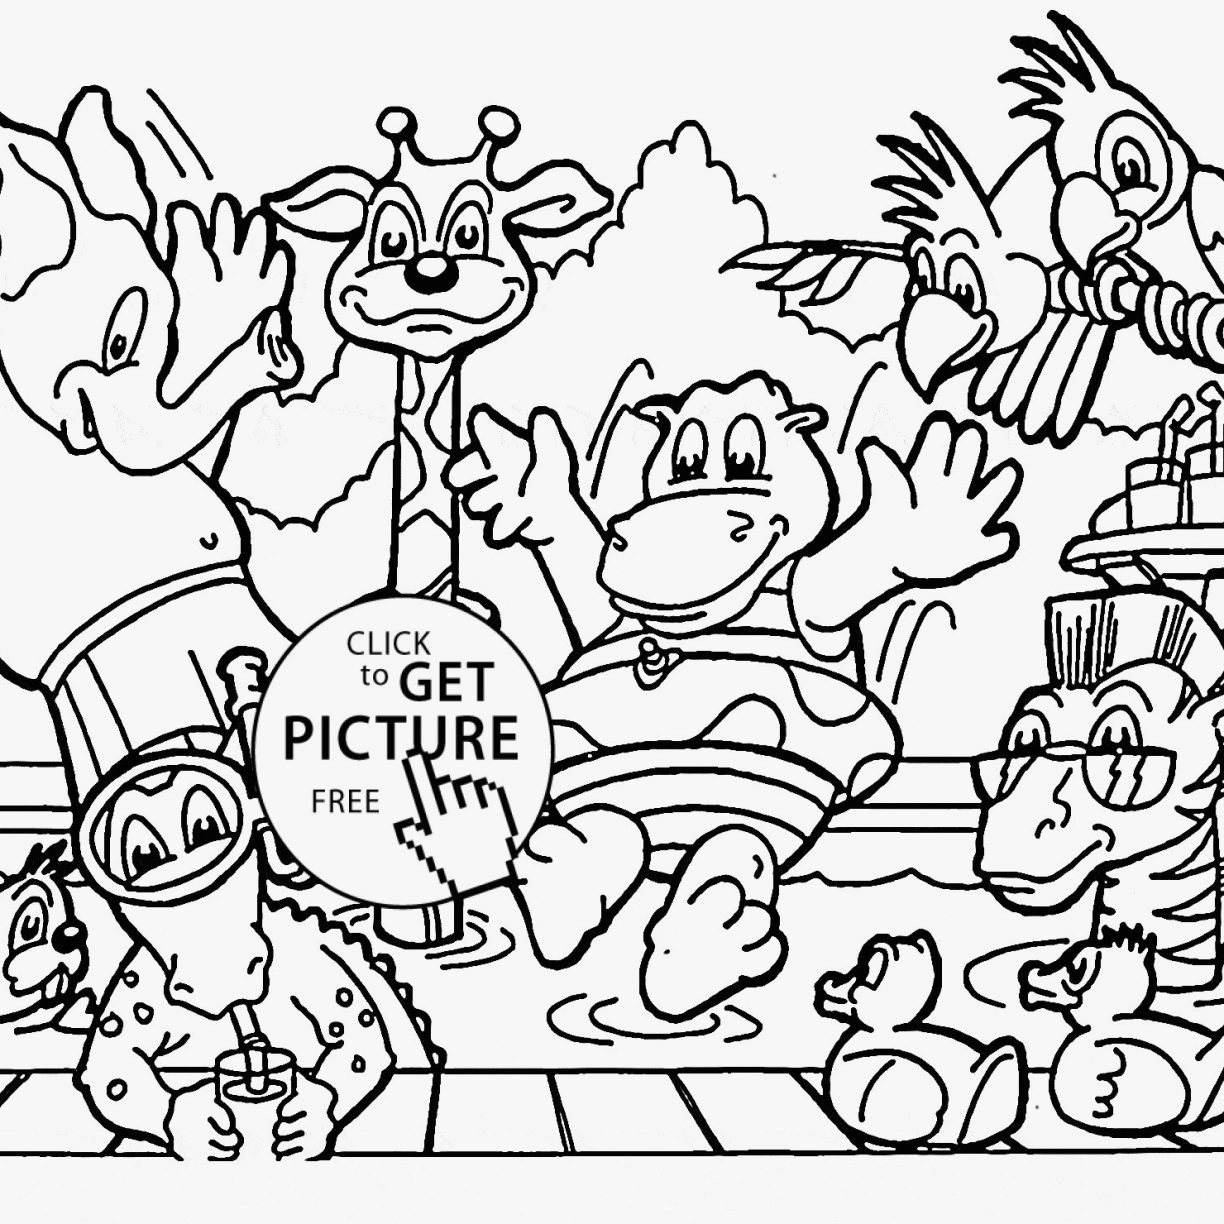 Chucky Coloring Pages Chucky Coloring Pages Bride Printable Doll Chuck Cheese Sheets